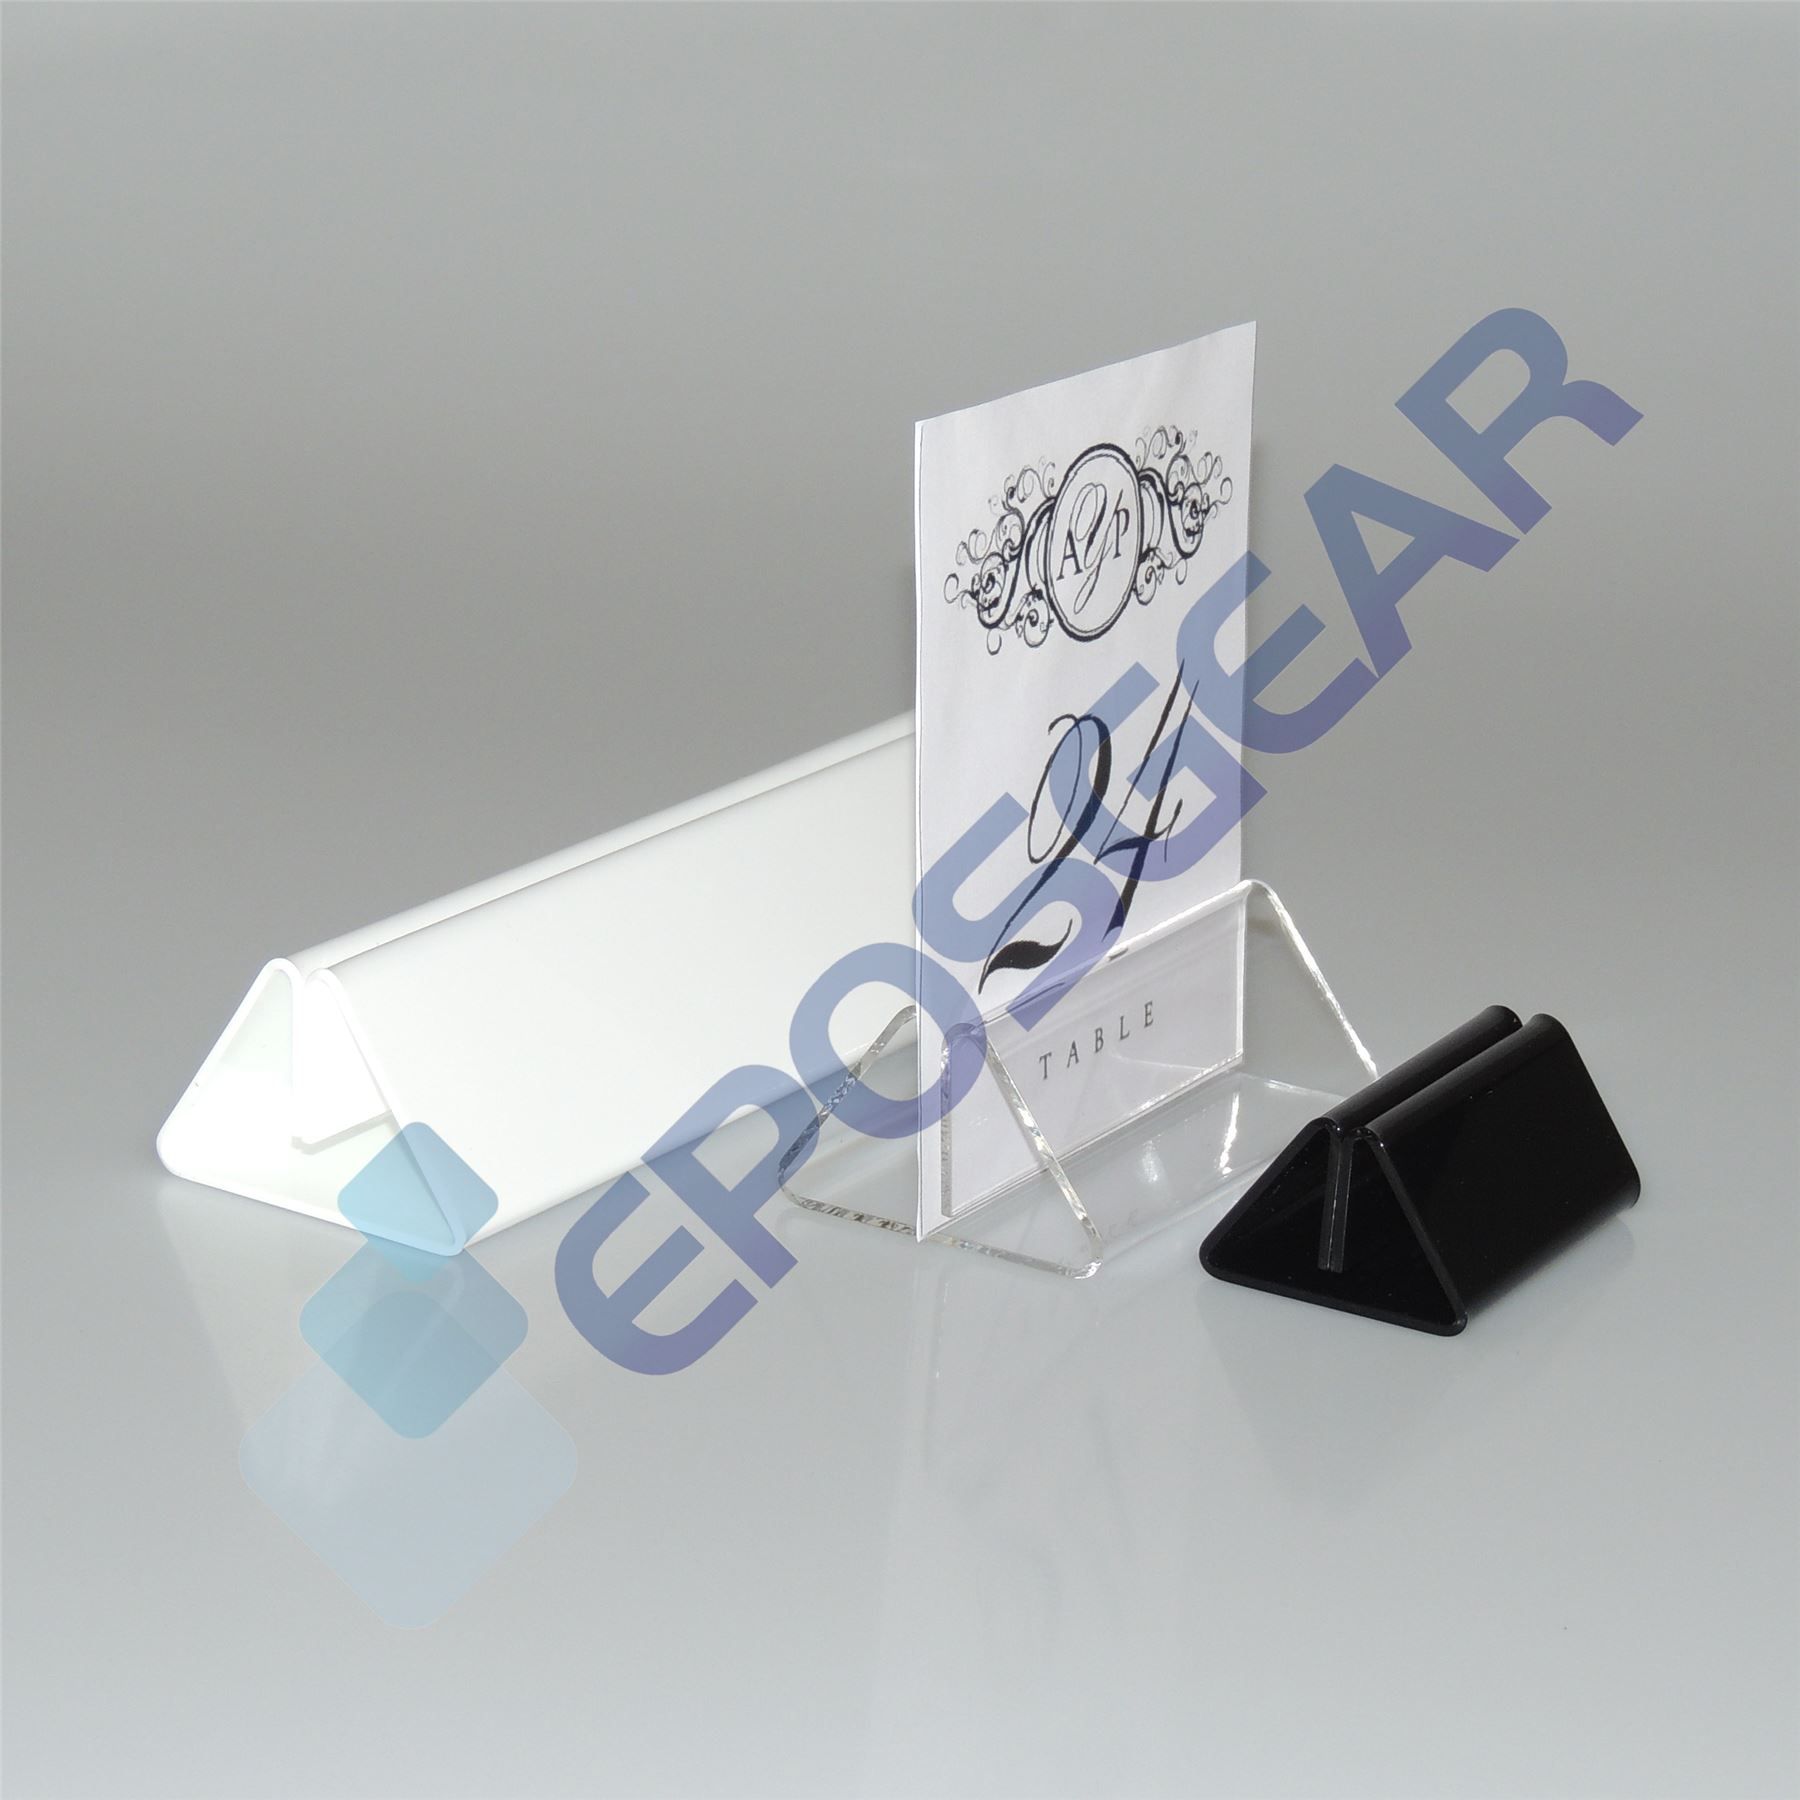 10 100mm Black Menu Card Showcard Name Place Table Setting Display Stand Holders